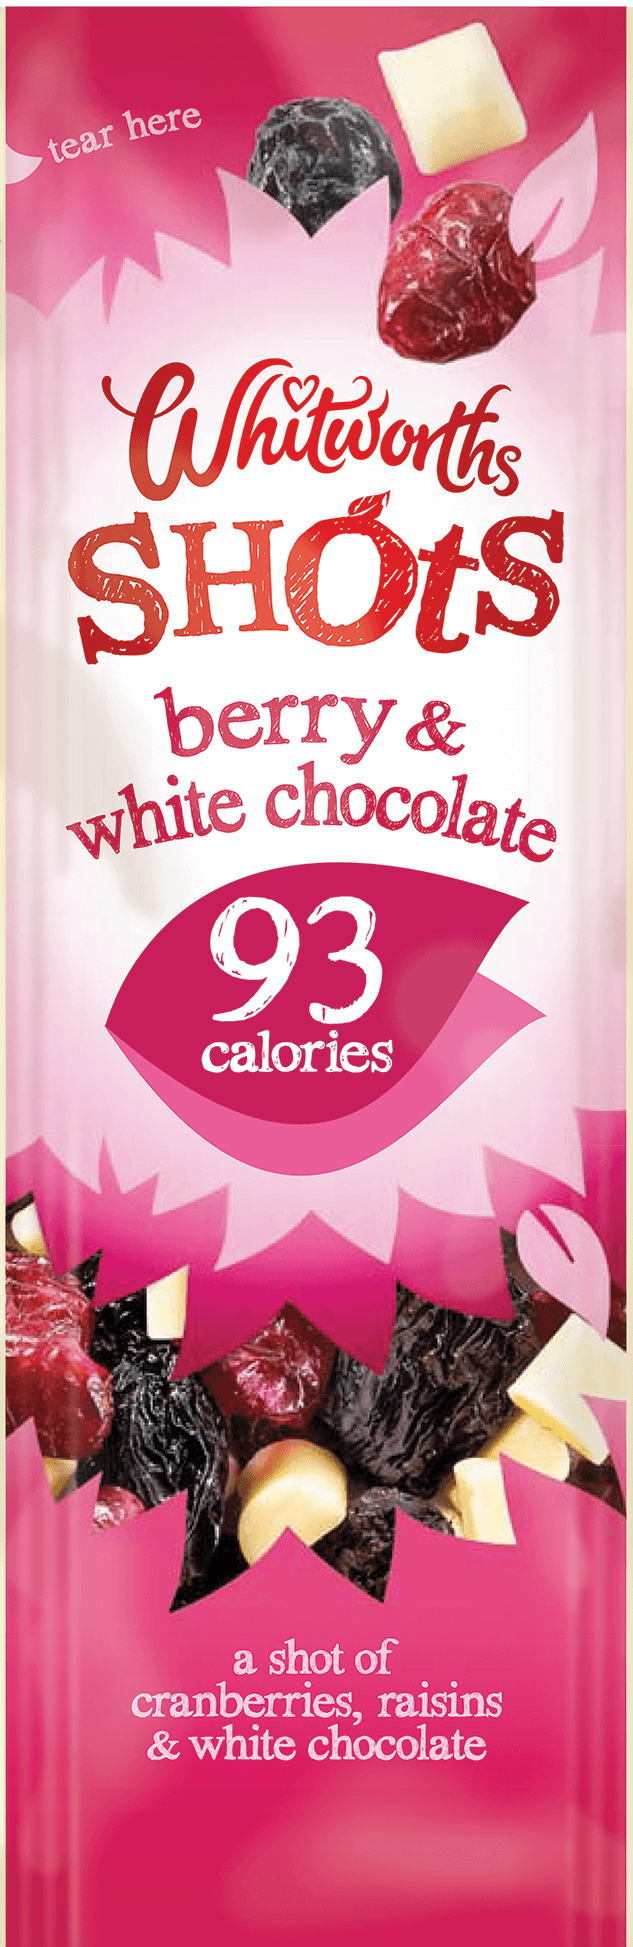 Whitworths Shots - Berry & White Chocolate (93 Calories)